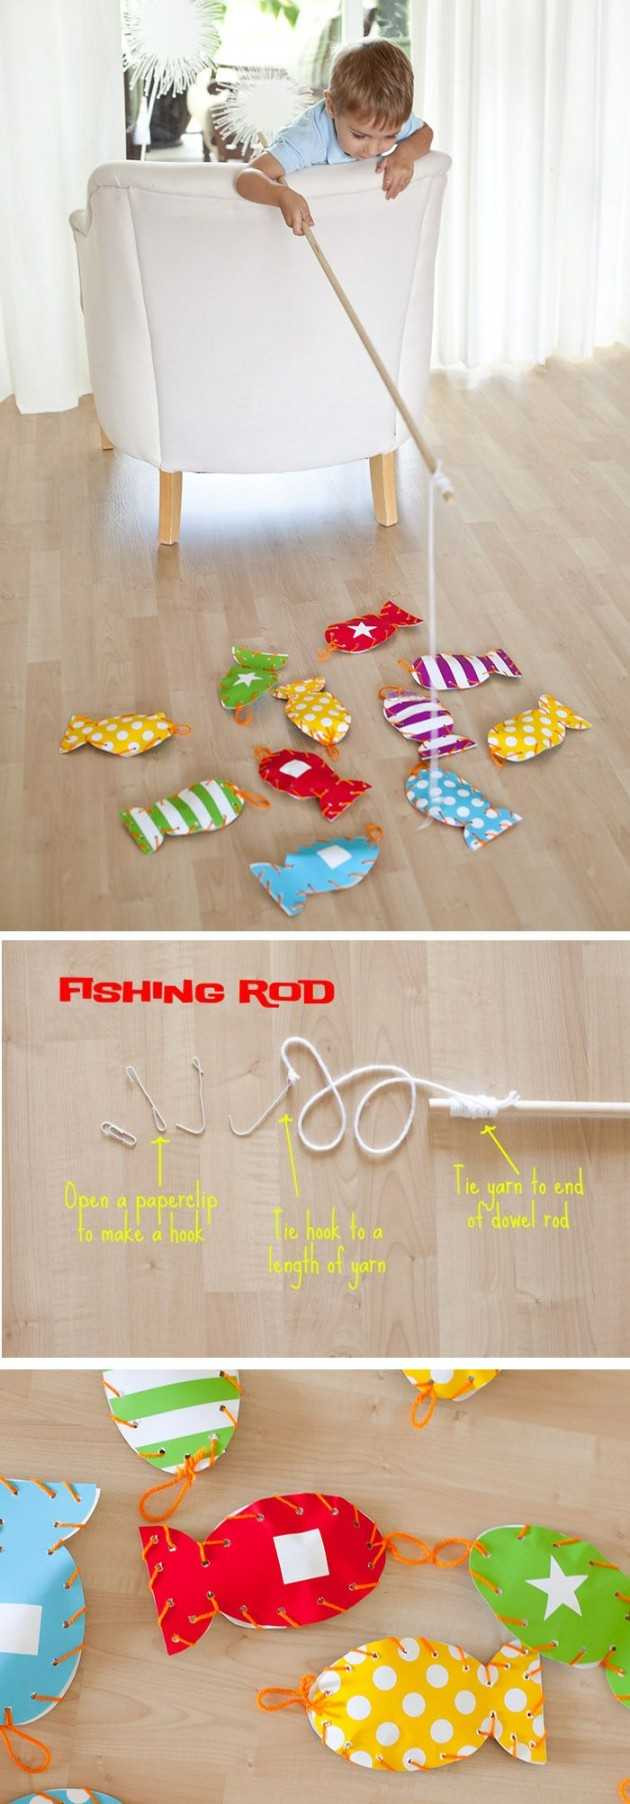 DIY Games For Toddlers  22 Most Fun DIY Games for Kids